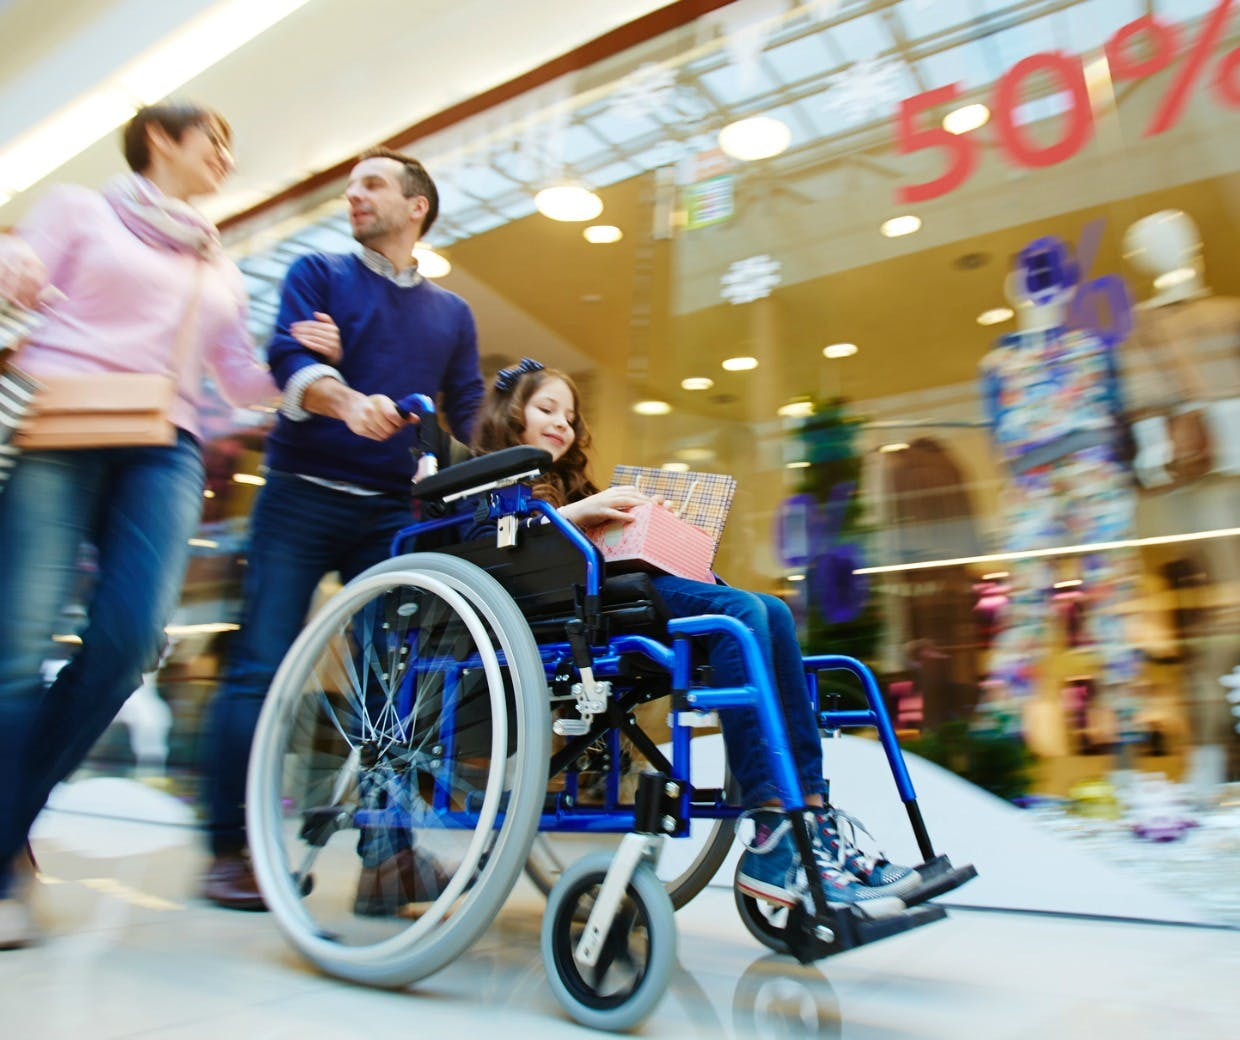 Disabled consumers